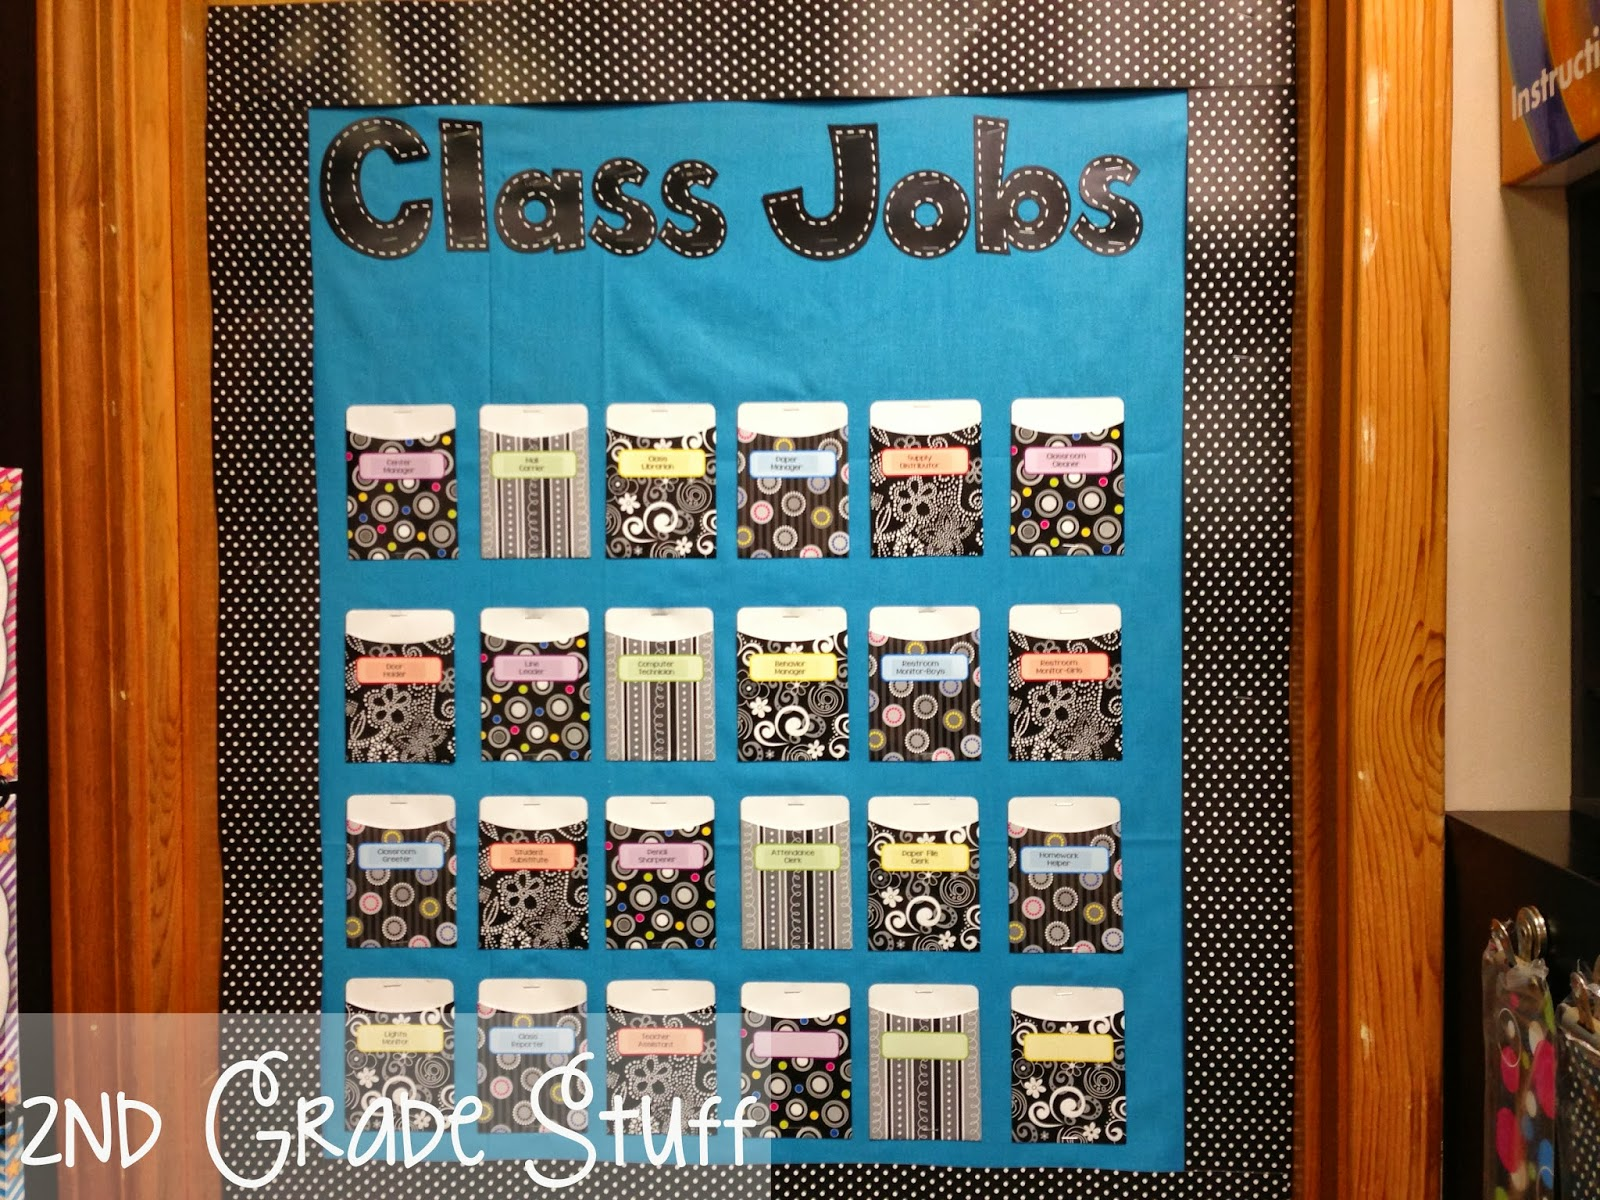 Classroom Decorations For Grade 7 ~ Classroom management with nd grade stuff freebies owl